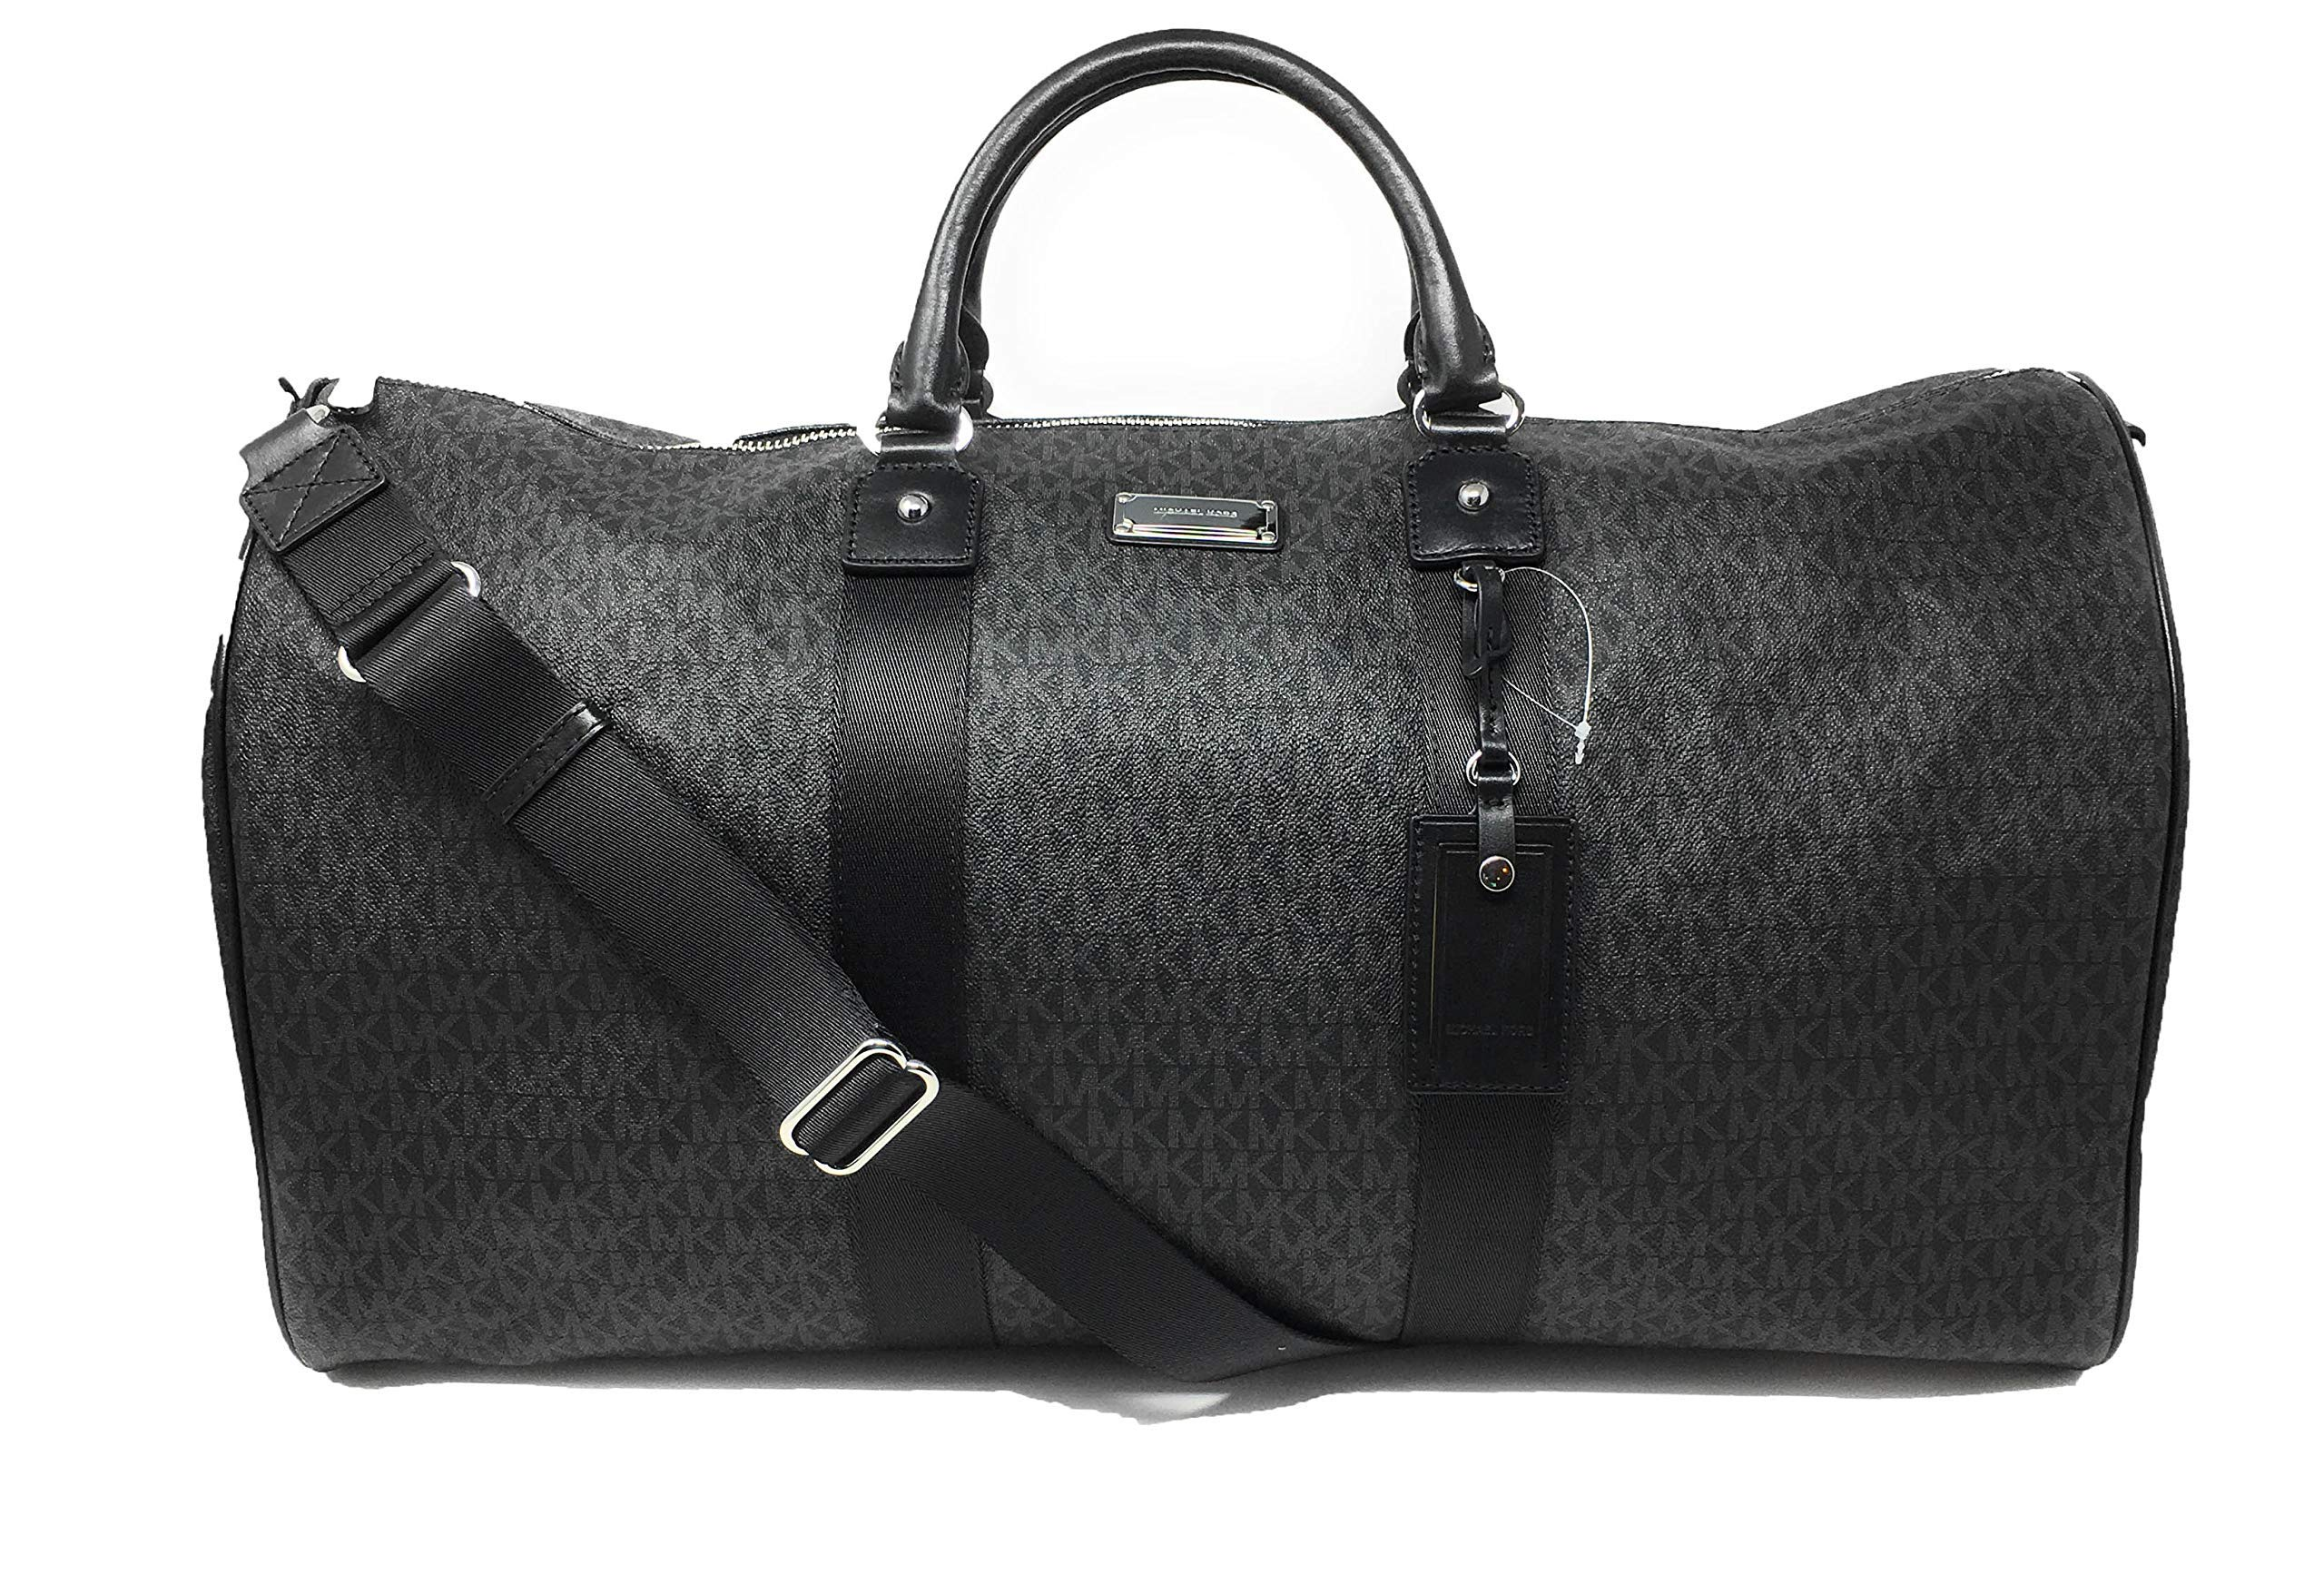 Michael Kors Michael Kors Leather PVC Travel Logo Duffle Large Bag Printed Duffel Luggage Black